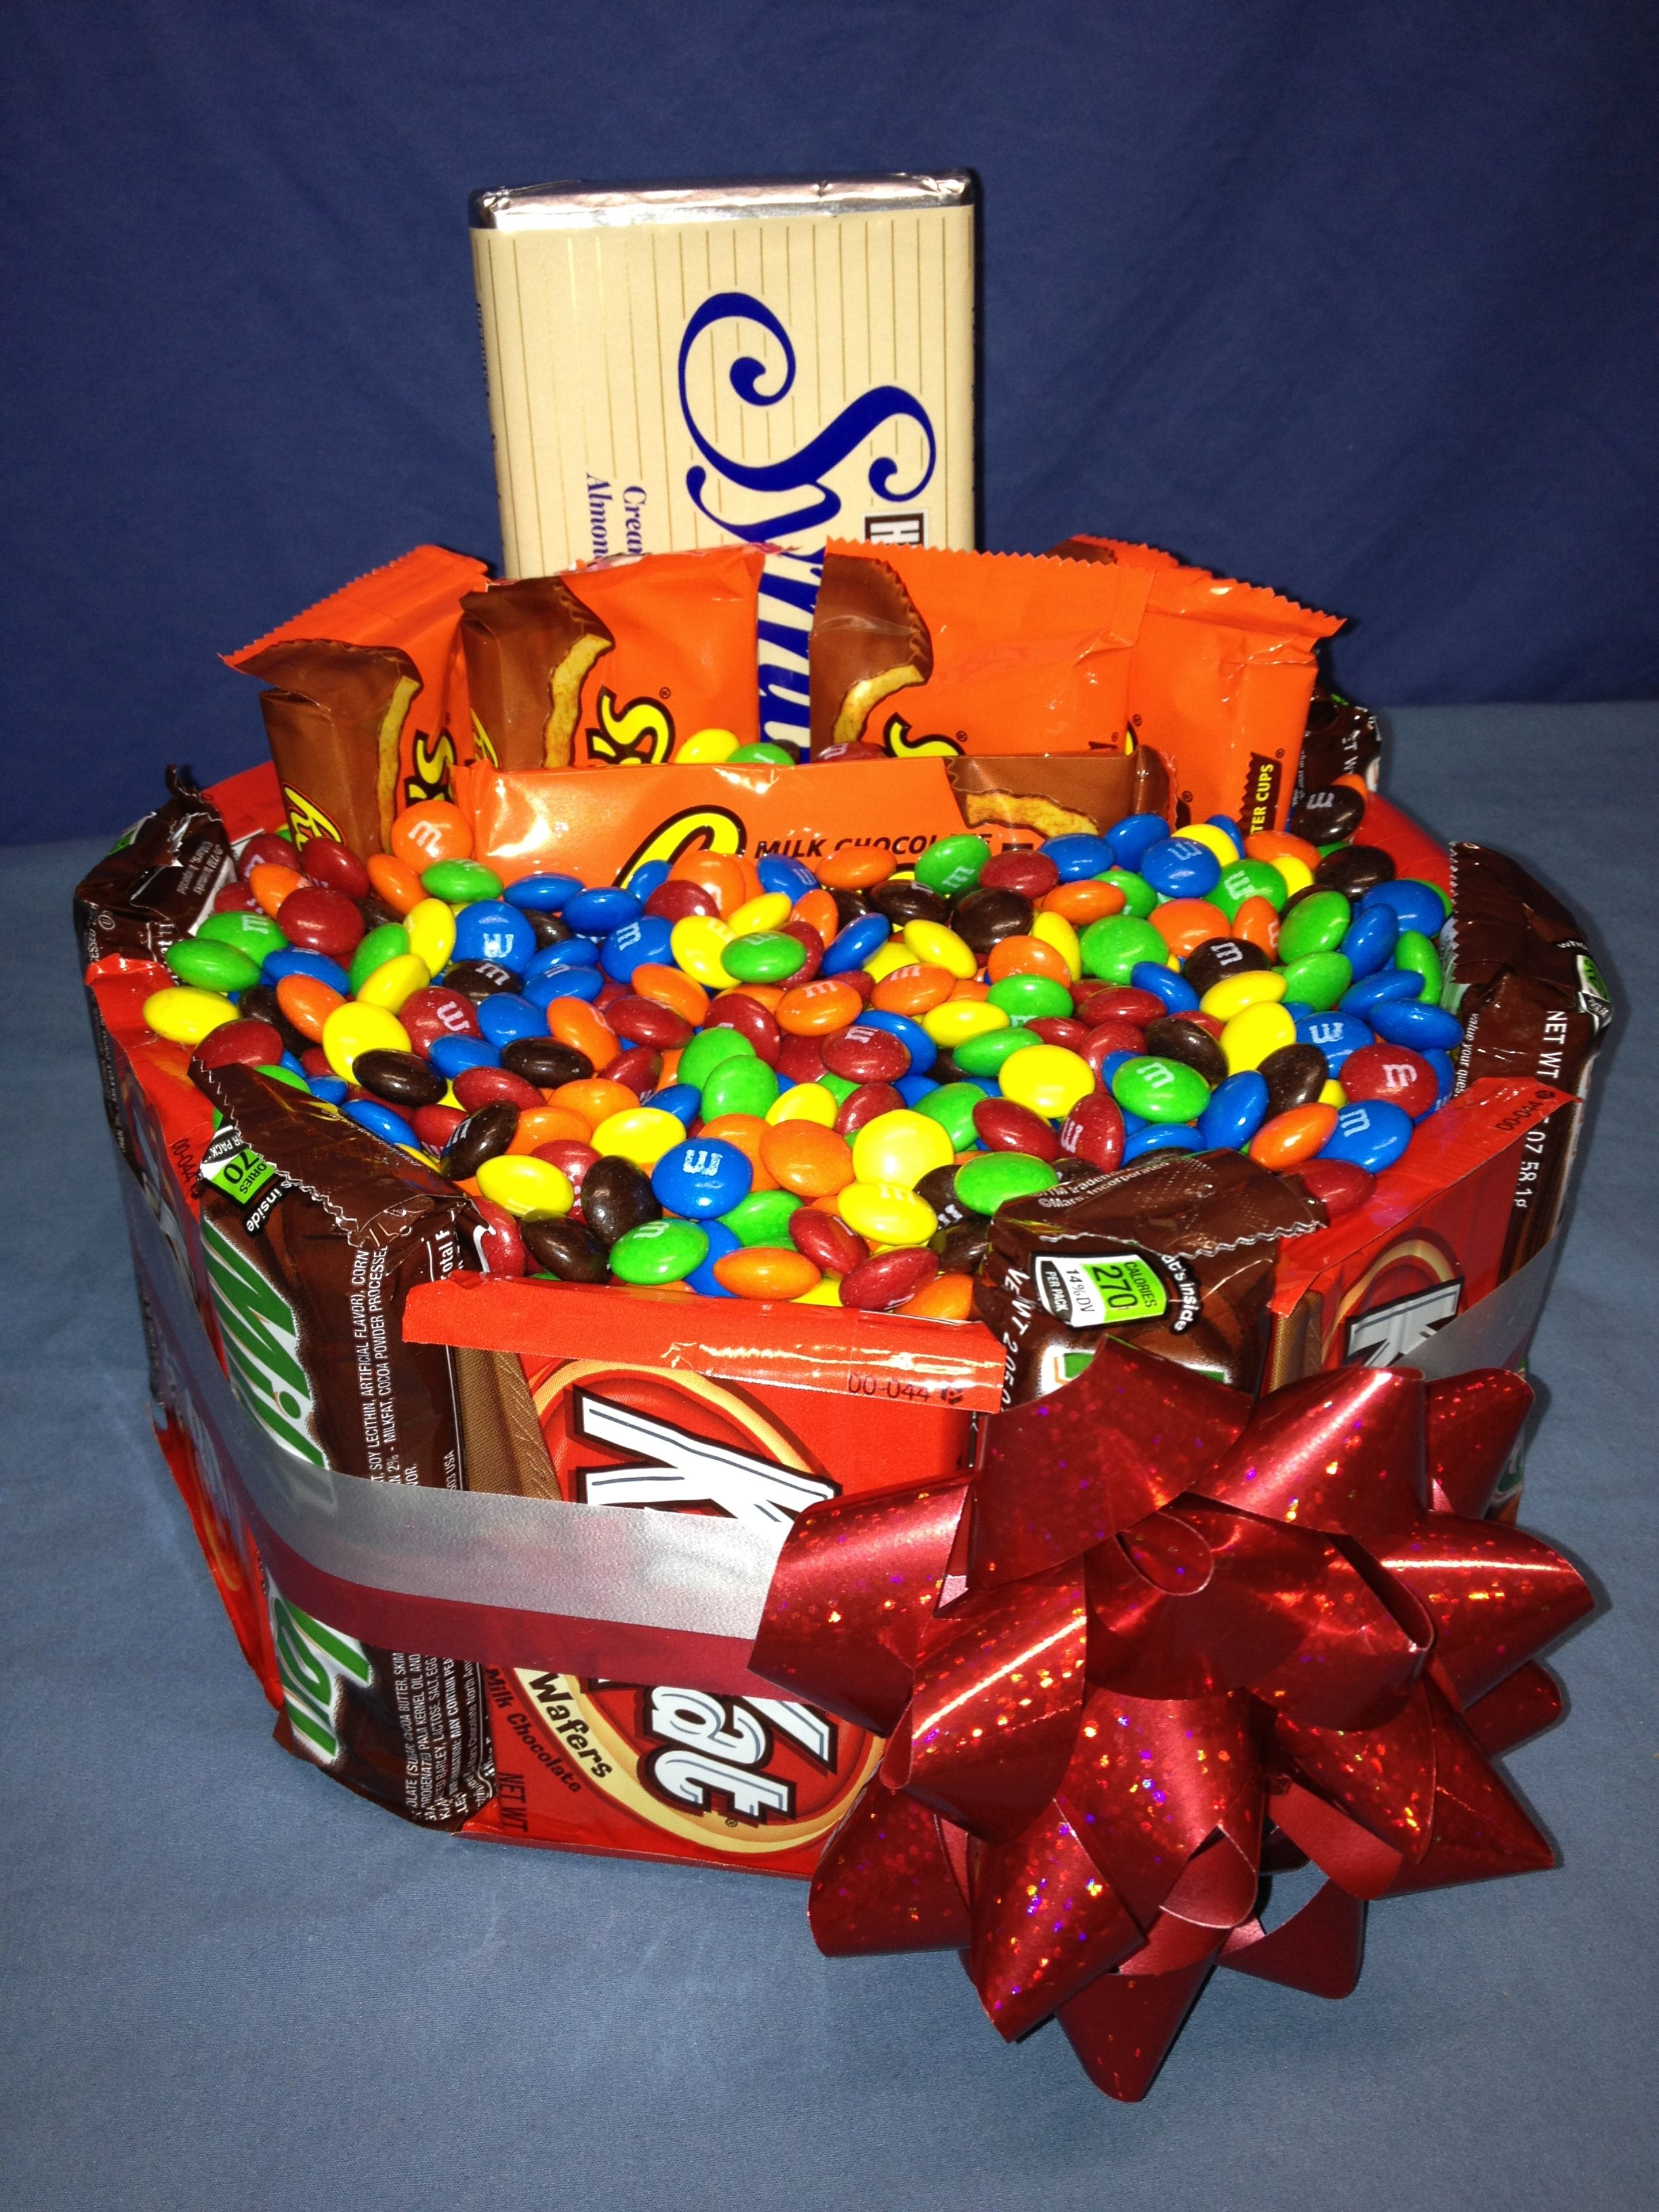 Candy K Whatlucyloves: M's, Reese's, Kit-Kat, Hershey, Milky-Way Candy Bar Gift